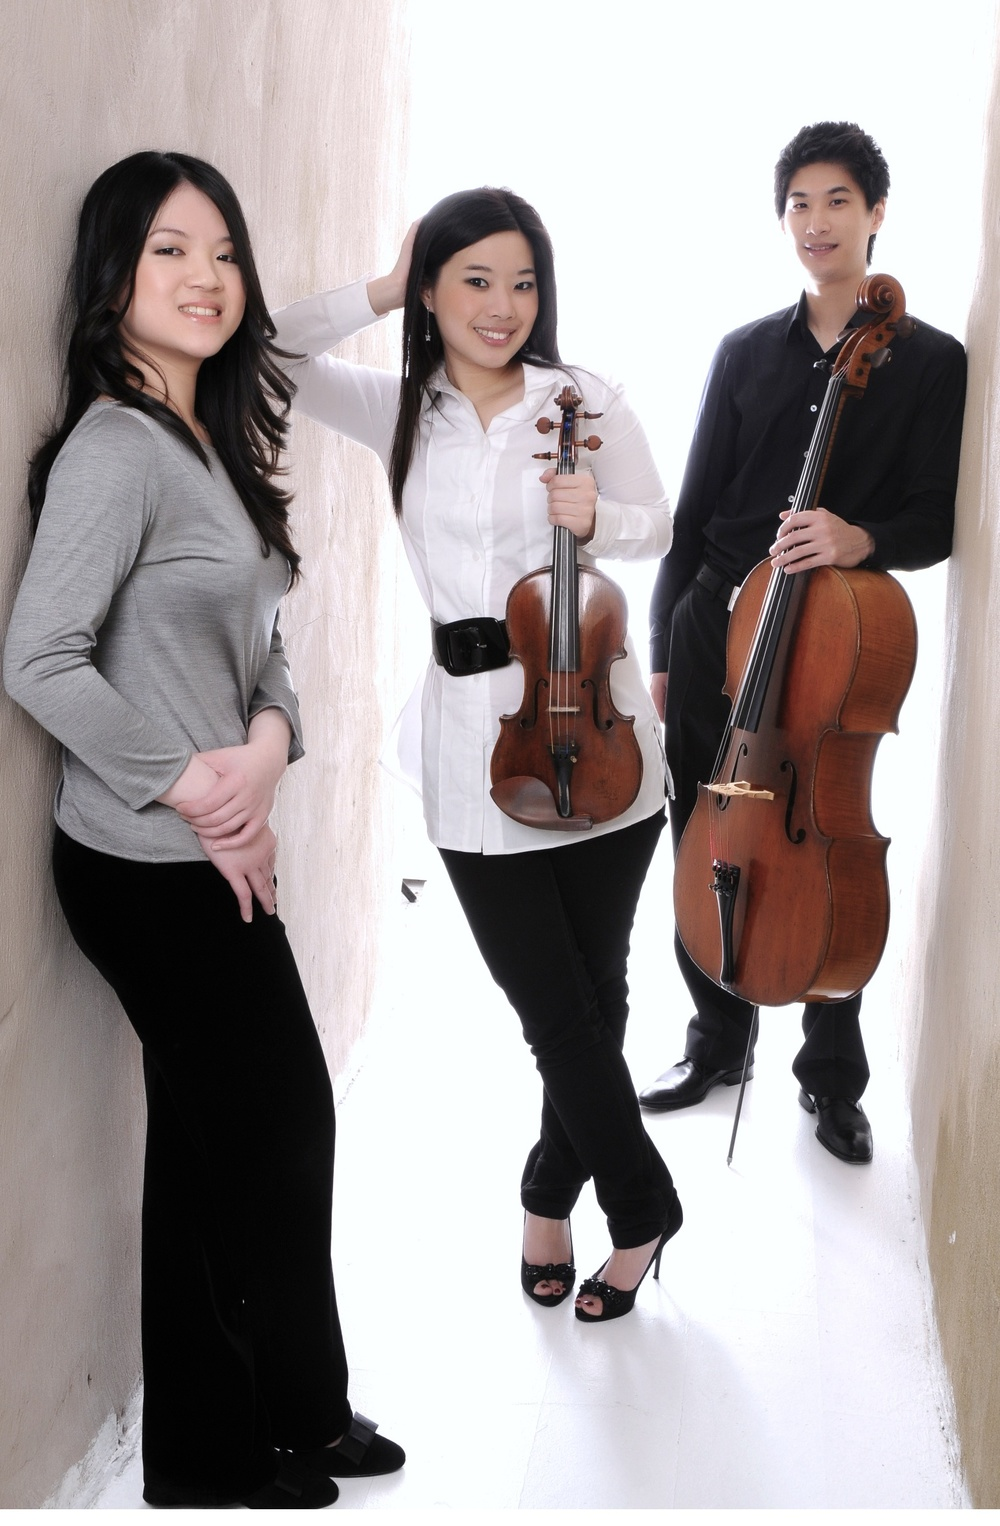 Fournier Trio is Chiao-Ying Chang (piano), Sulki Yu (violin), and Pei-Jee Ng (cello).